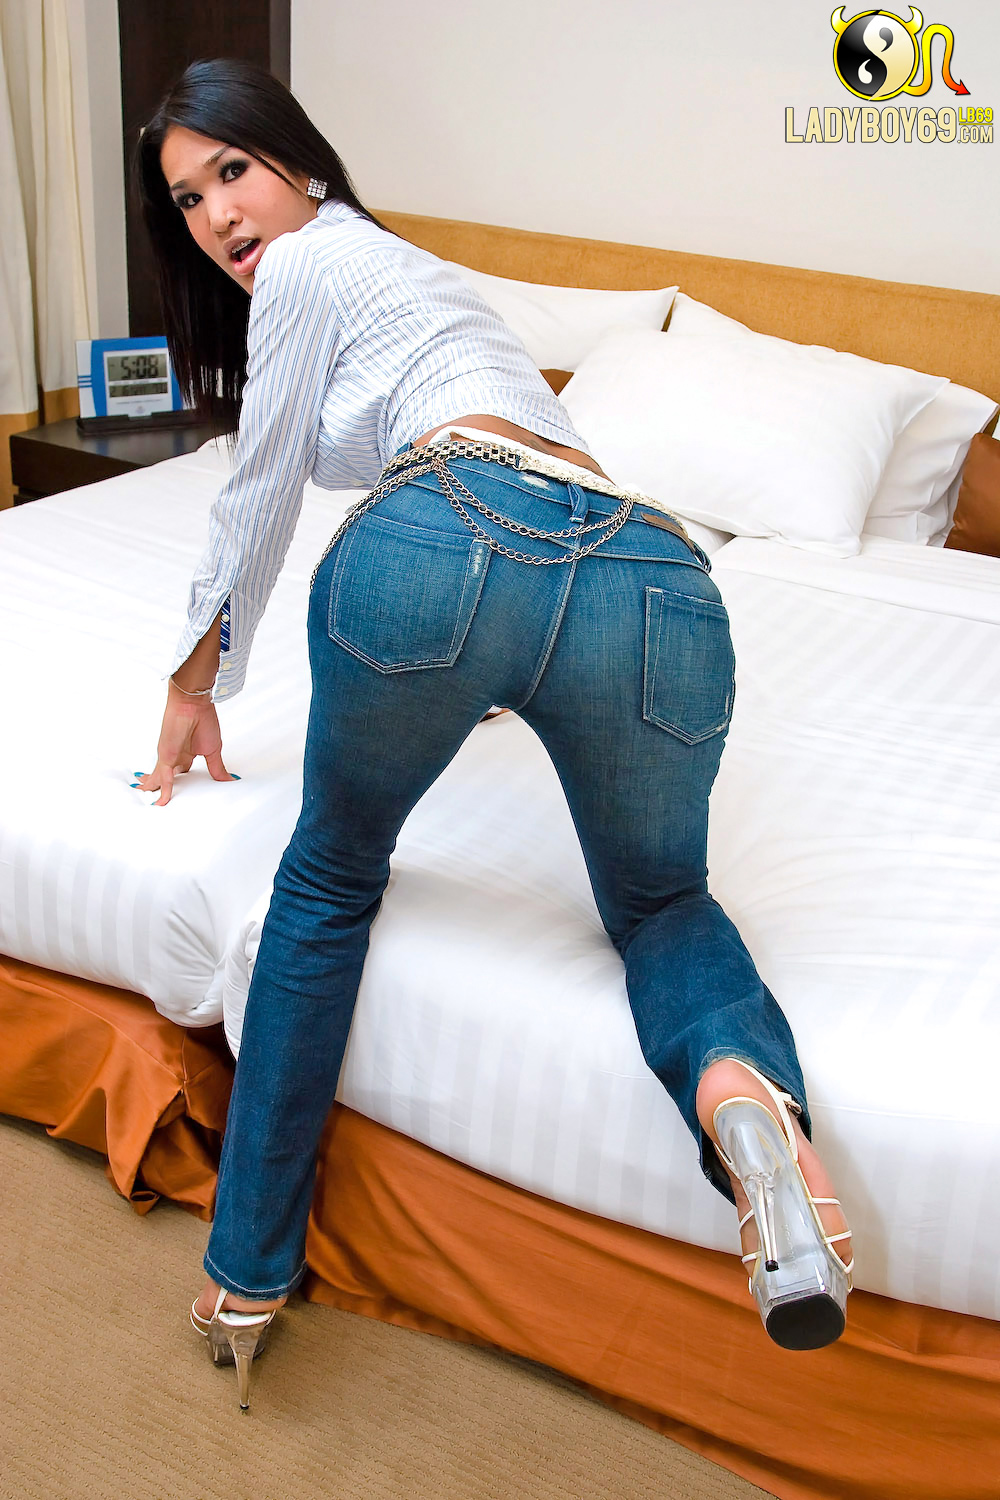 Sexy woman wearing boots and tight jeans